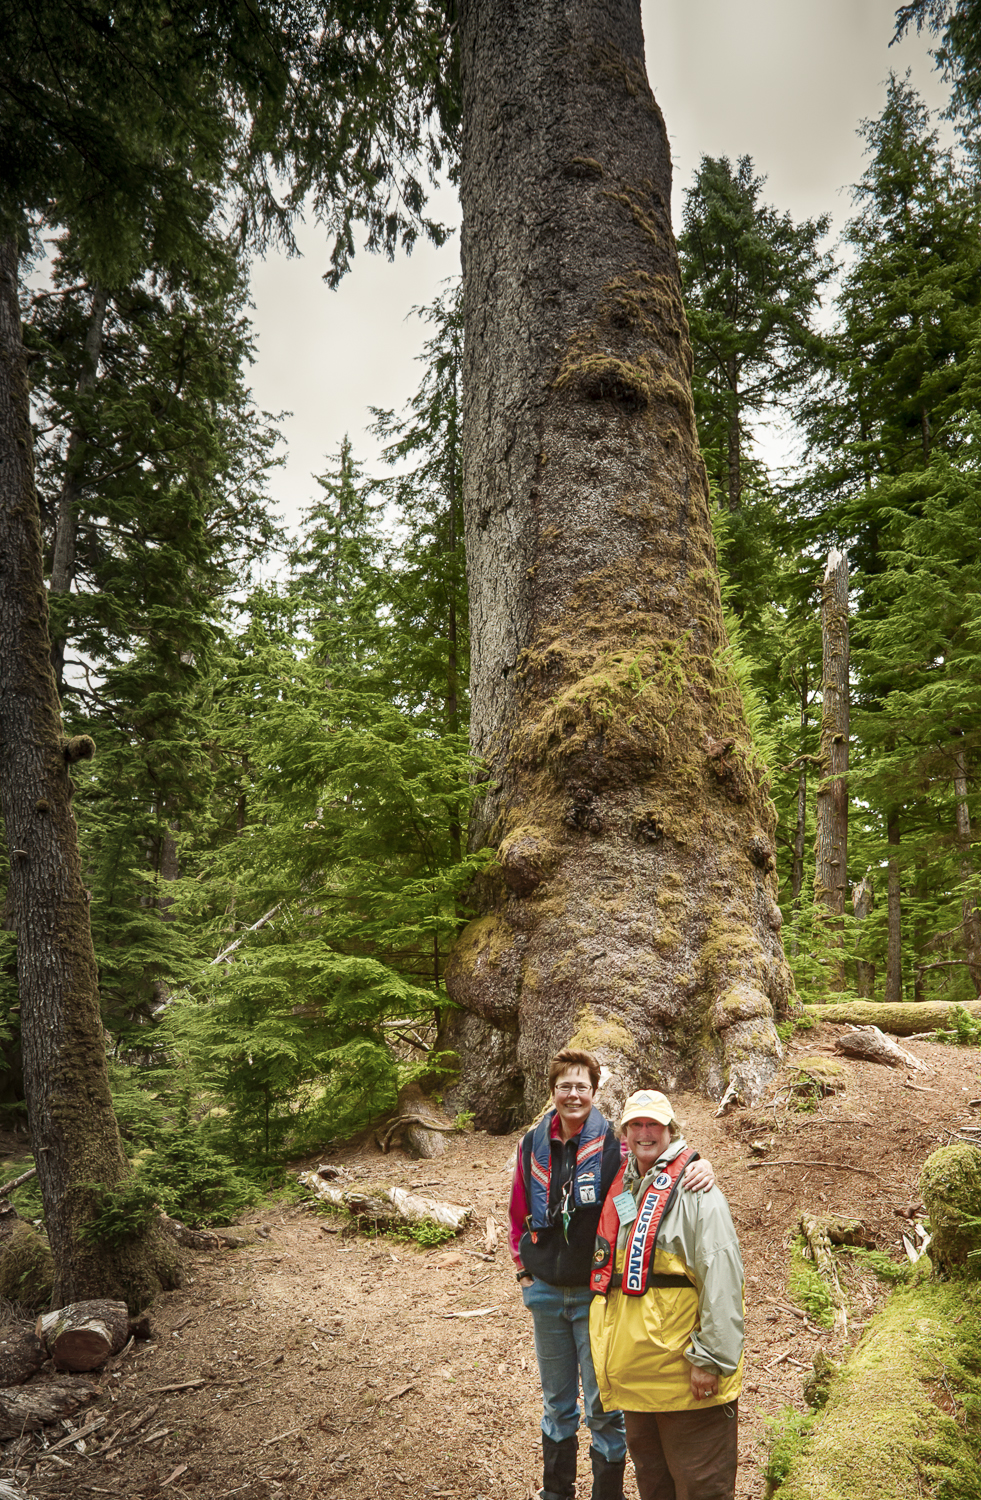 Karen and Kathy stand below the largest Spruce tree